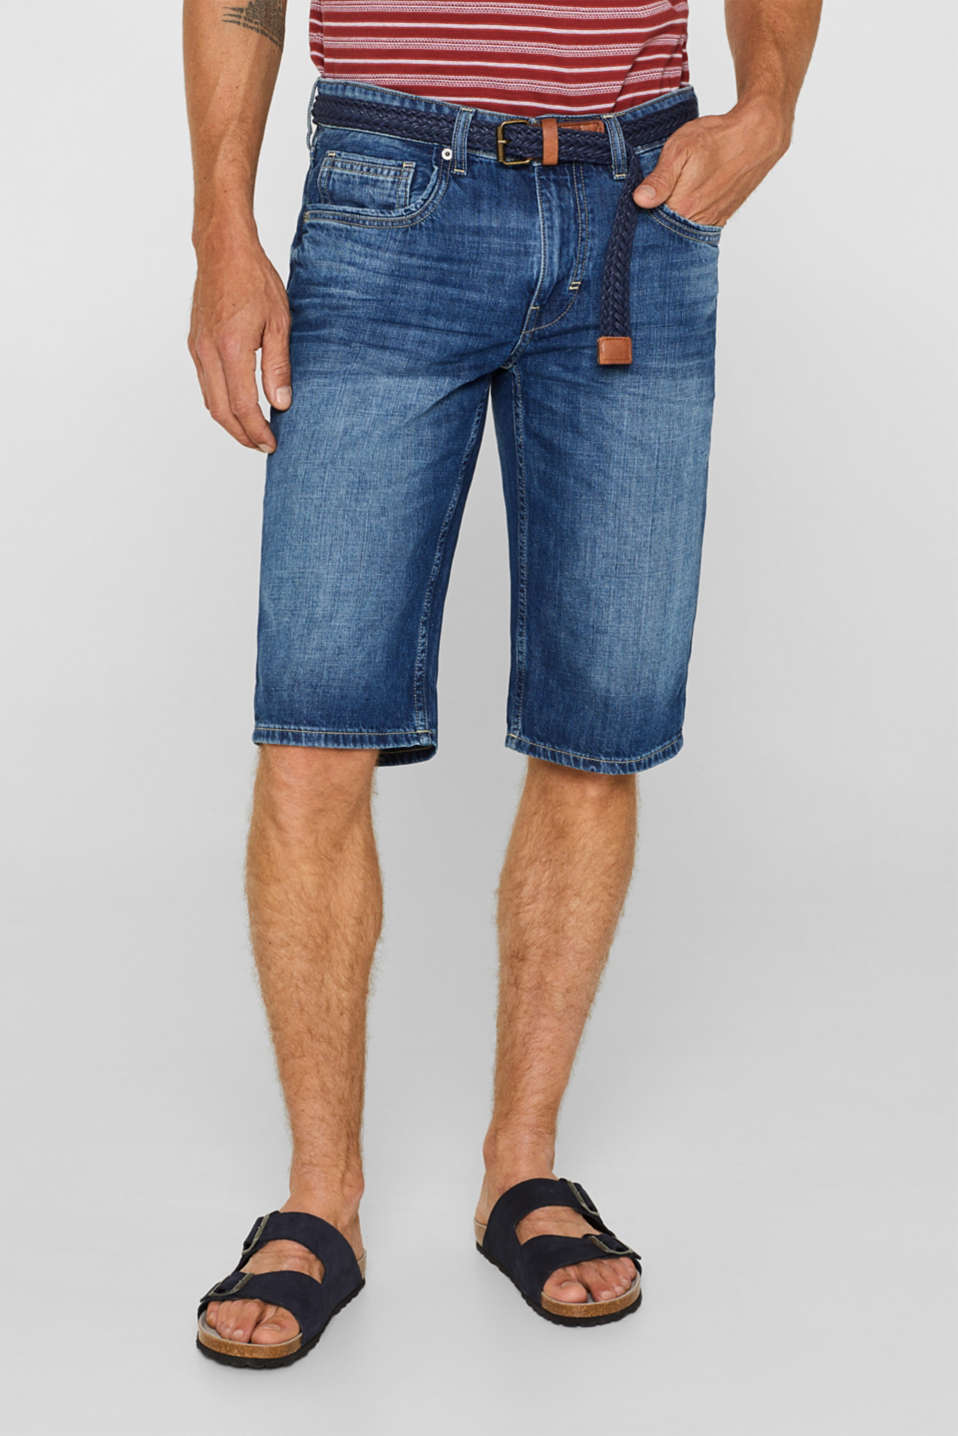 Esprit - Denim shorts with a belt, 100% cotton